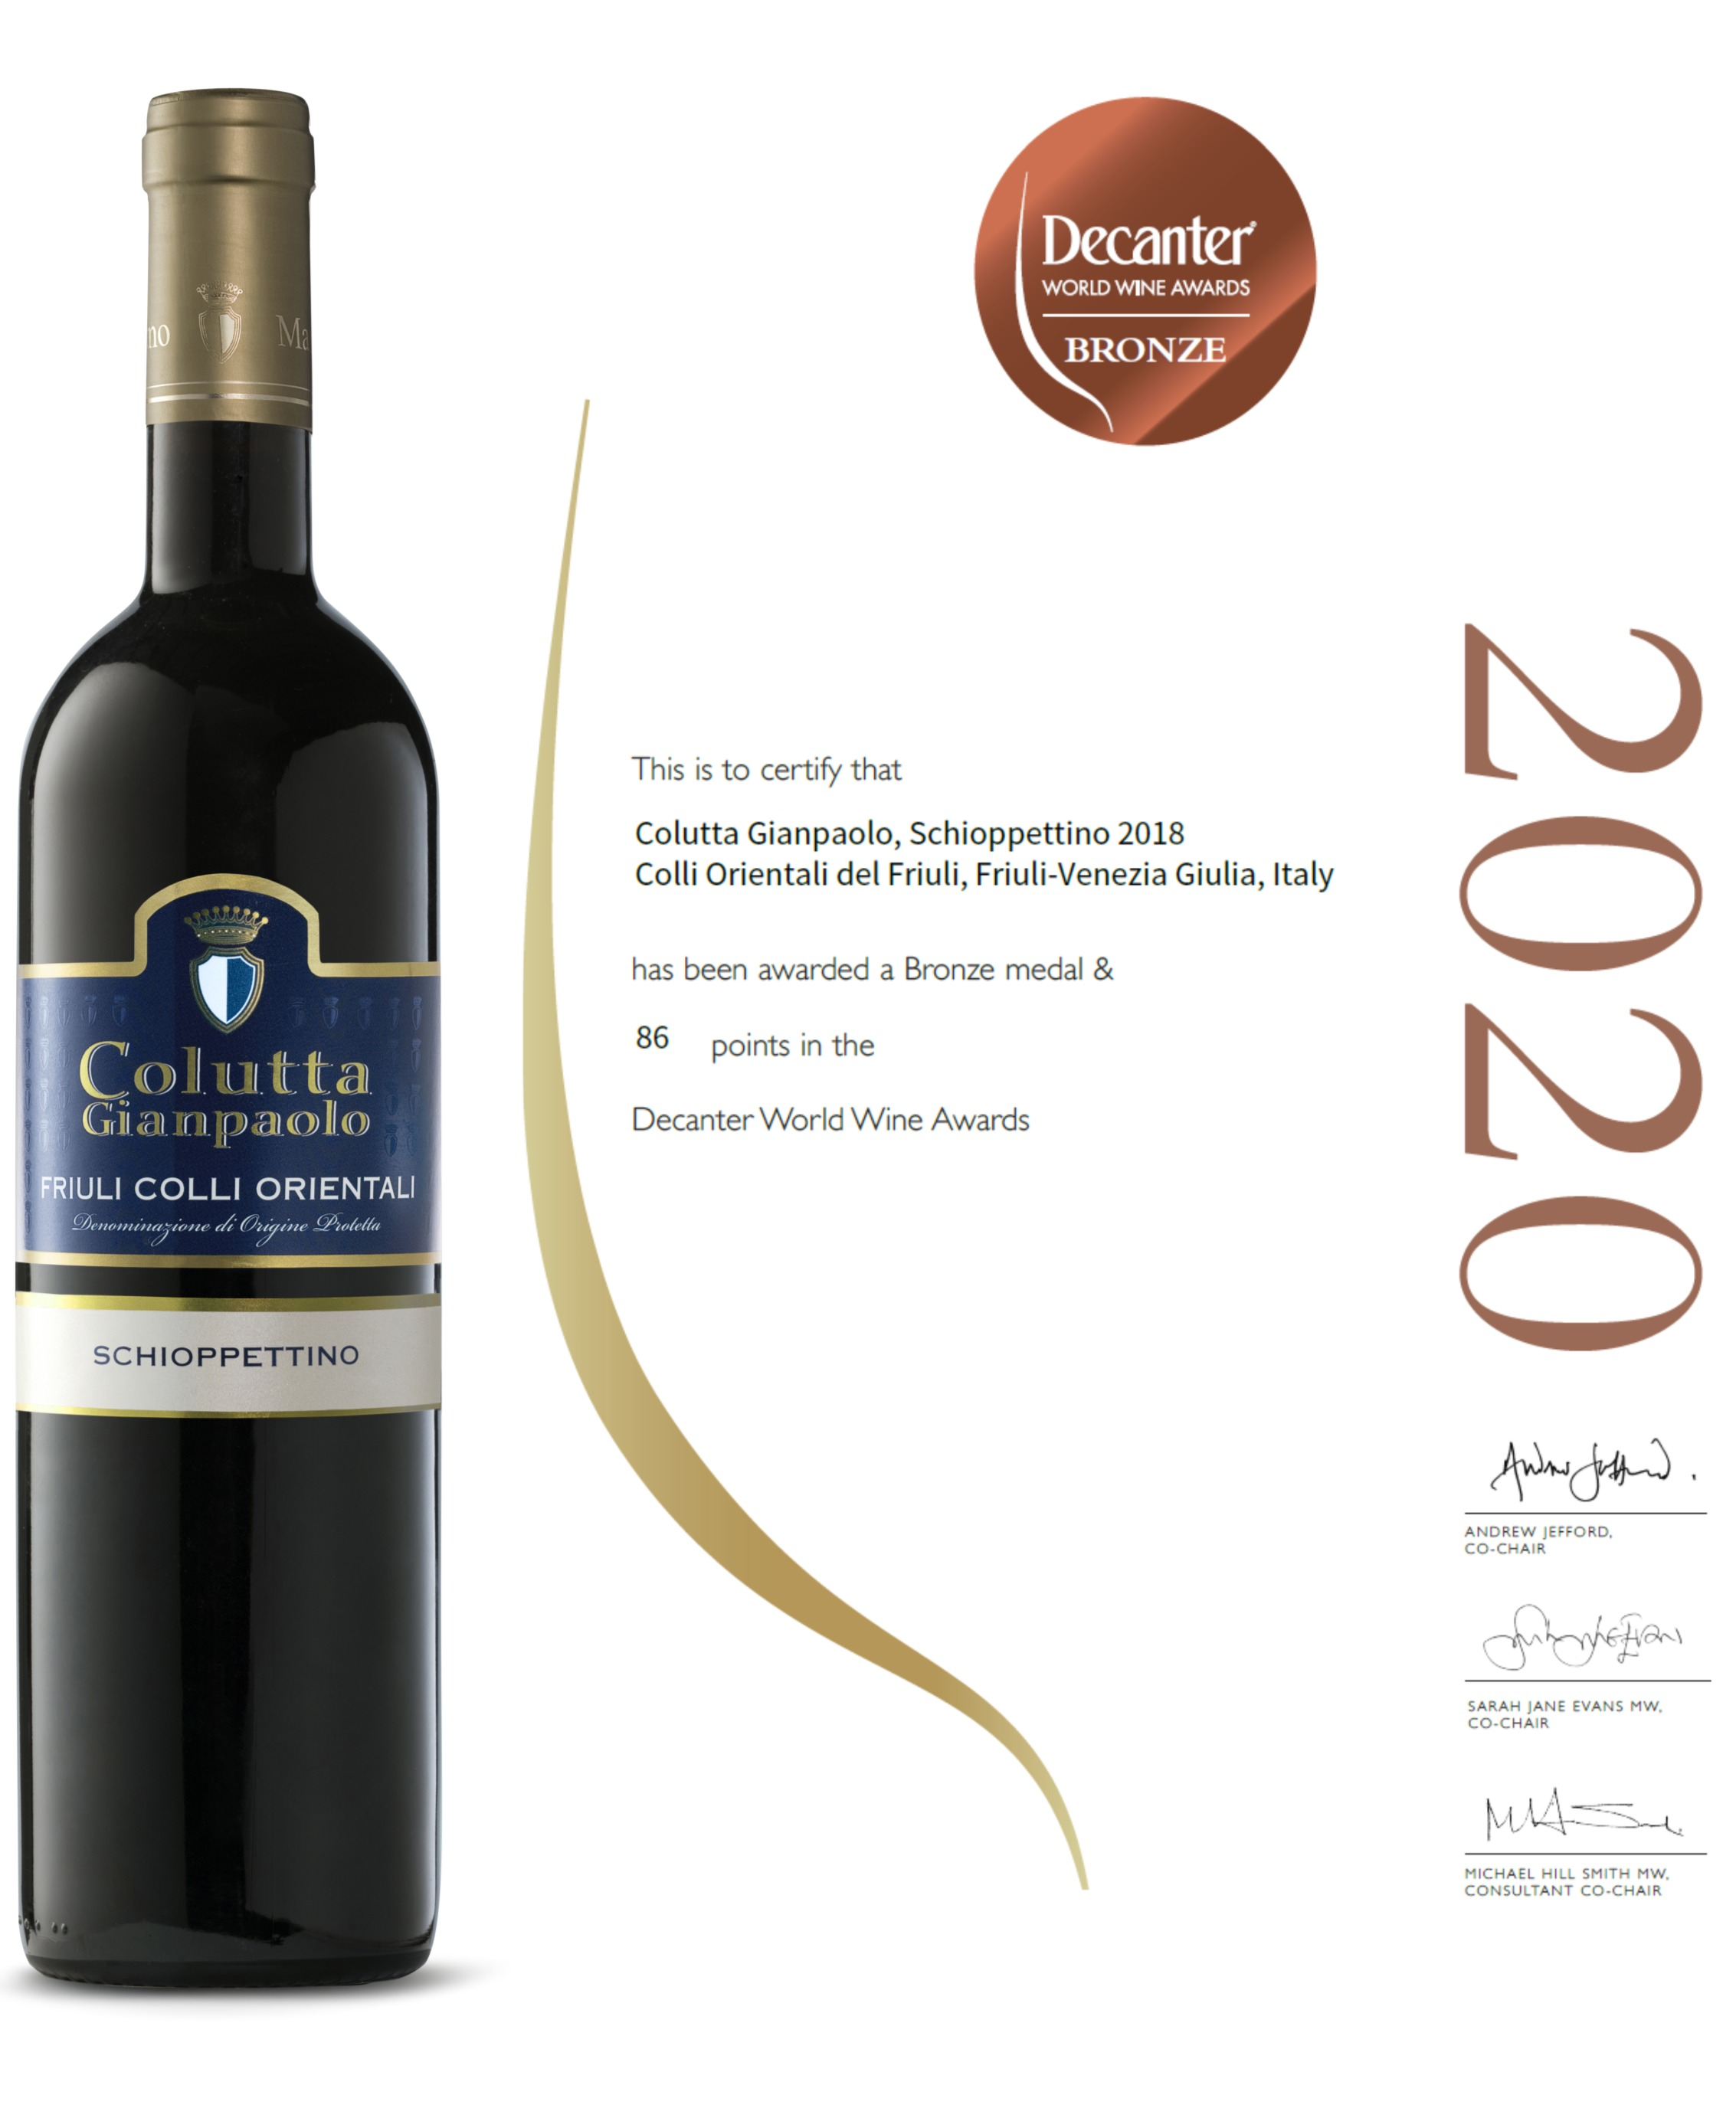 schioppettino%20decanter%202020_edited